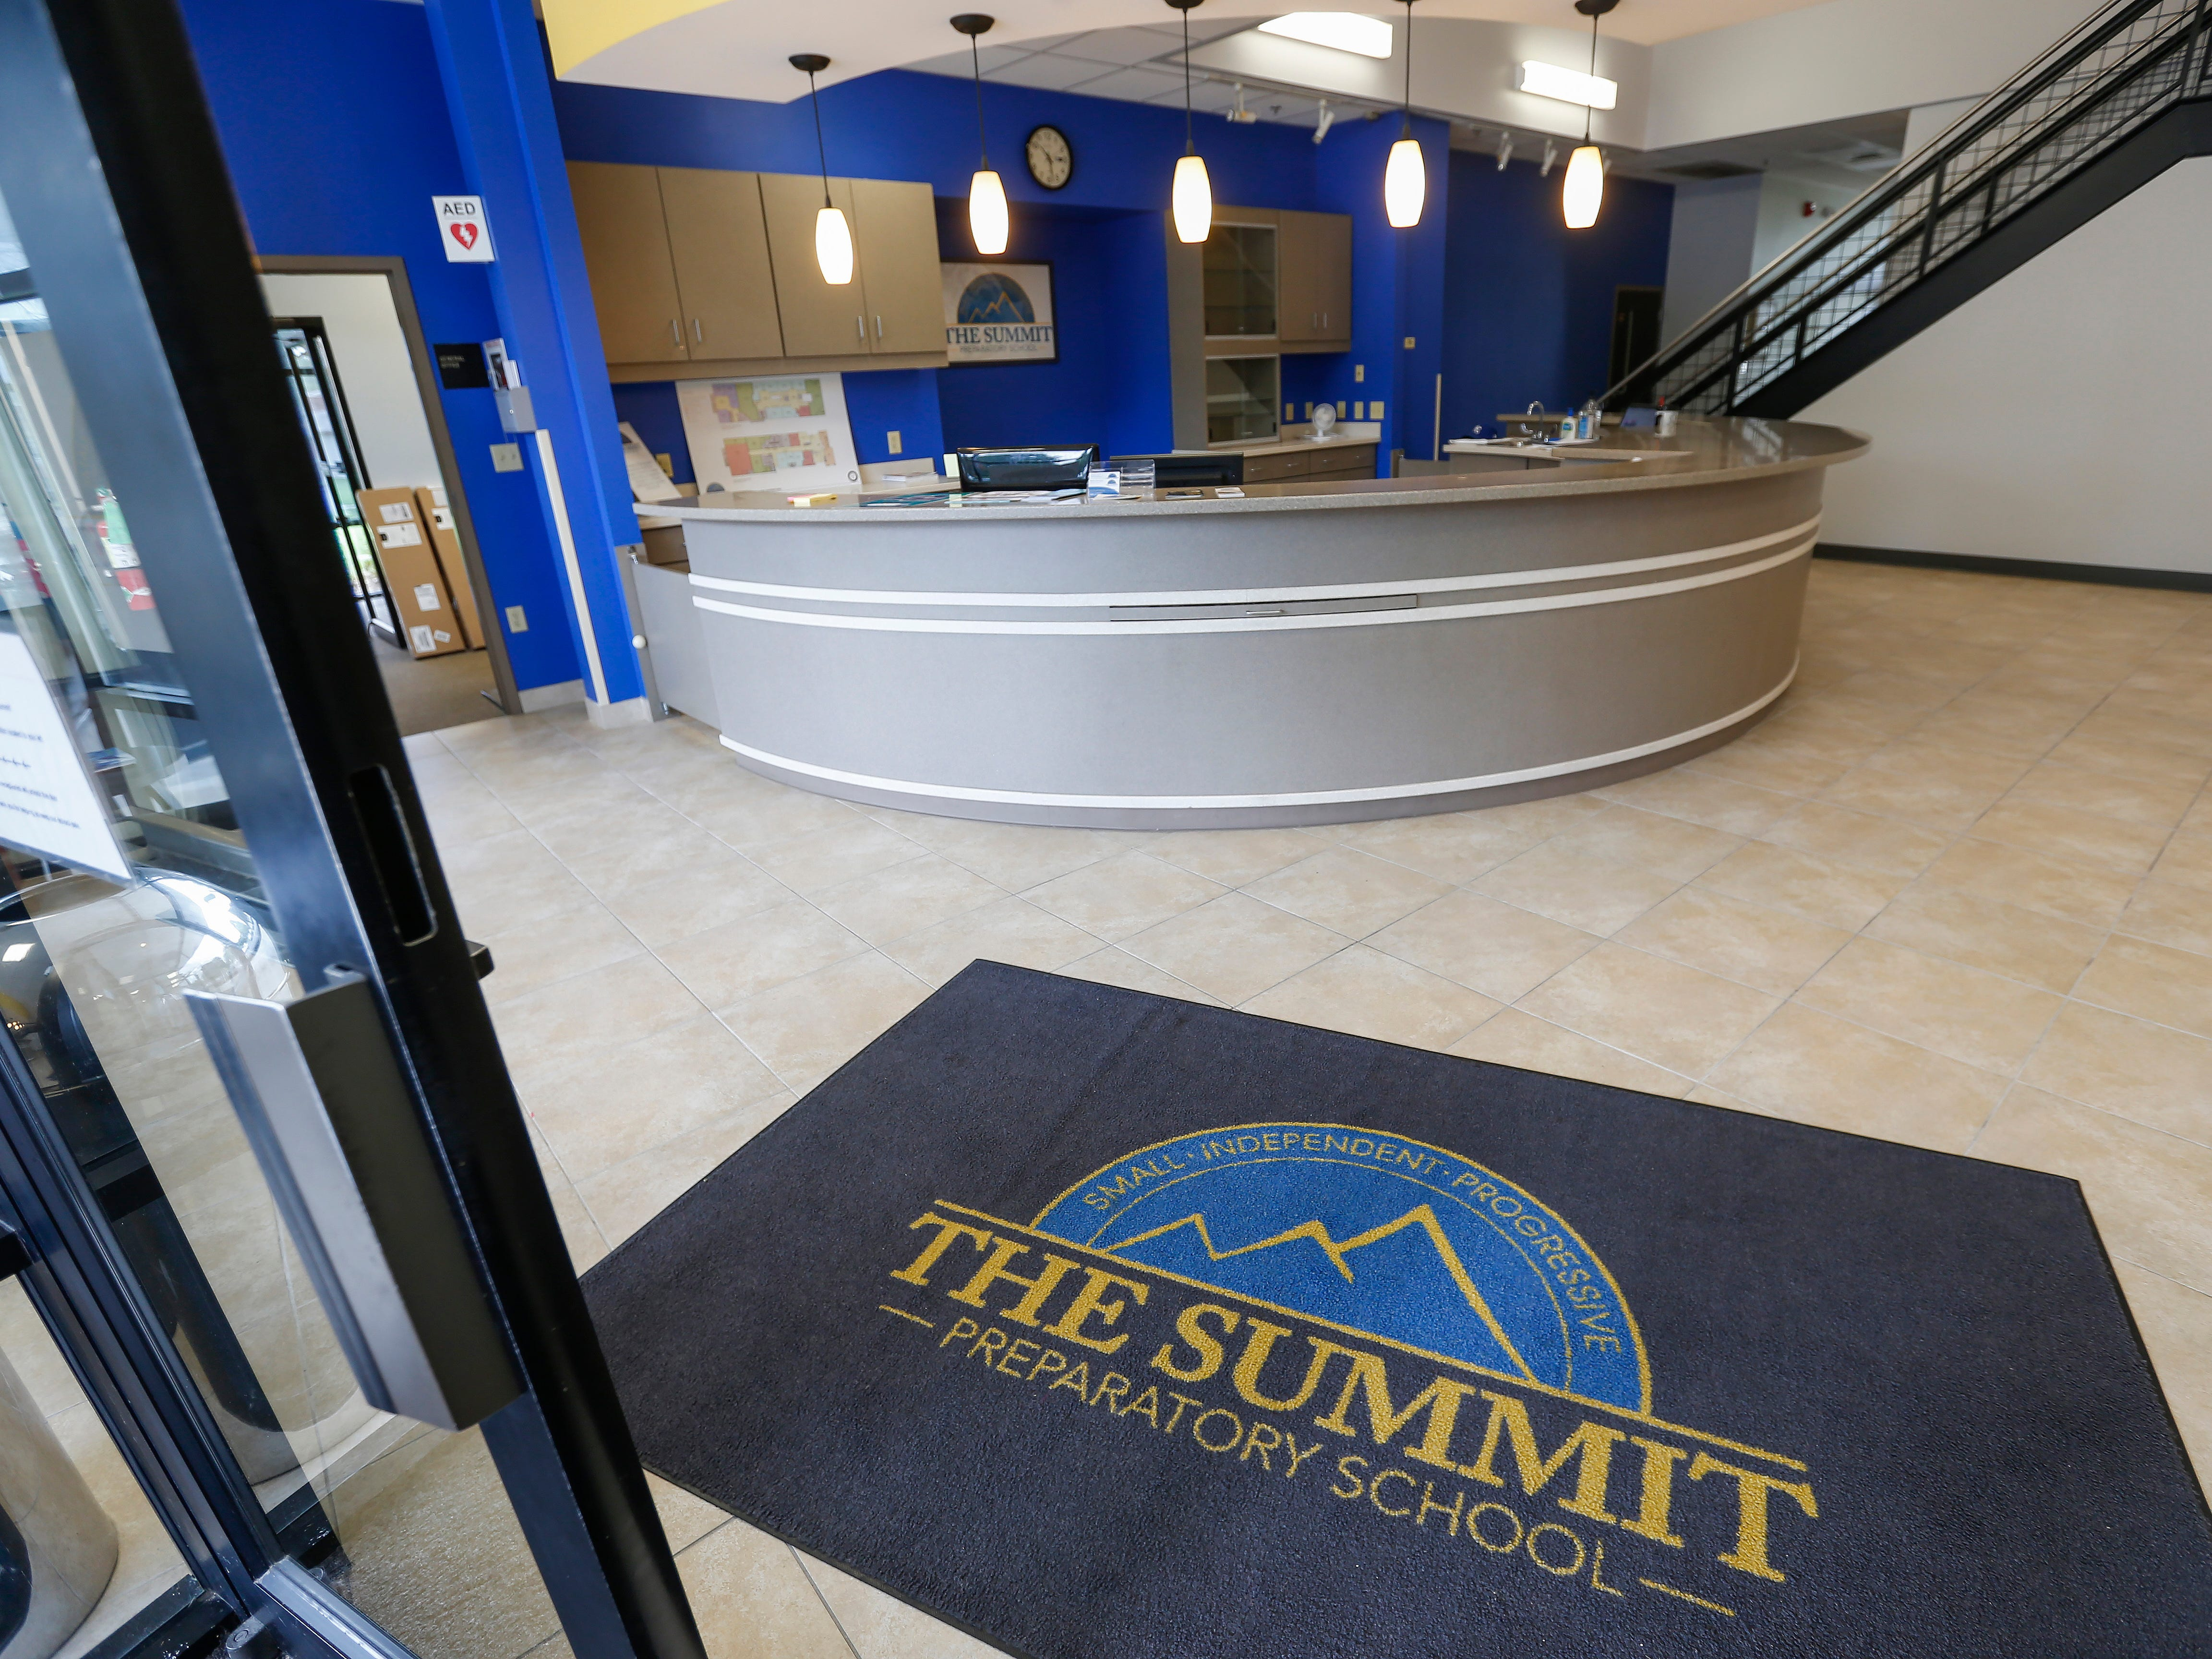 The main lobby at the Summit Preparatory School's new location at 202 E. Walnut Lawn St.